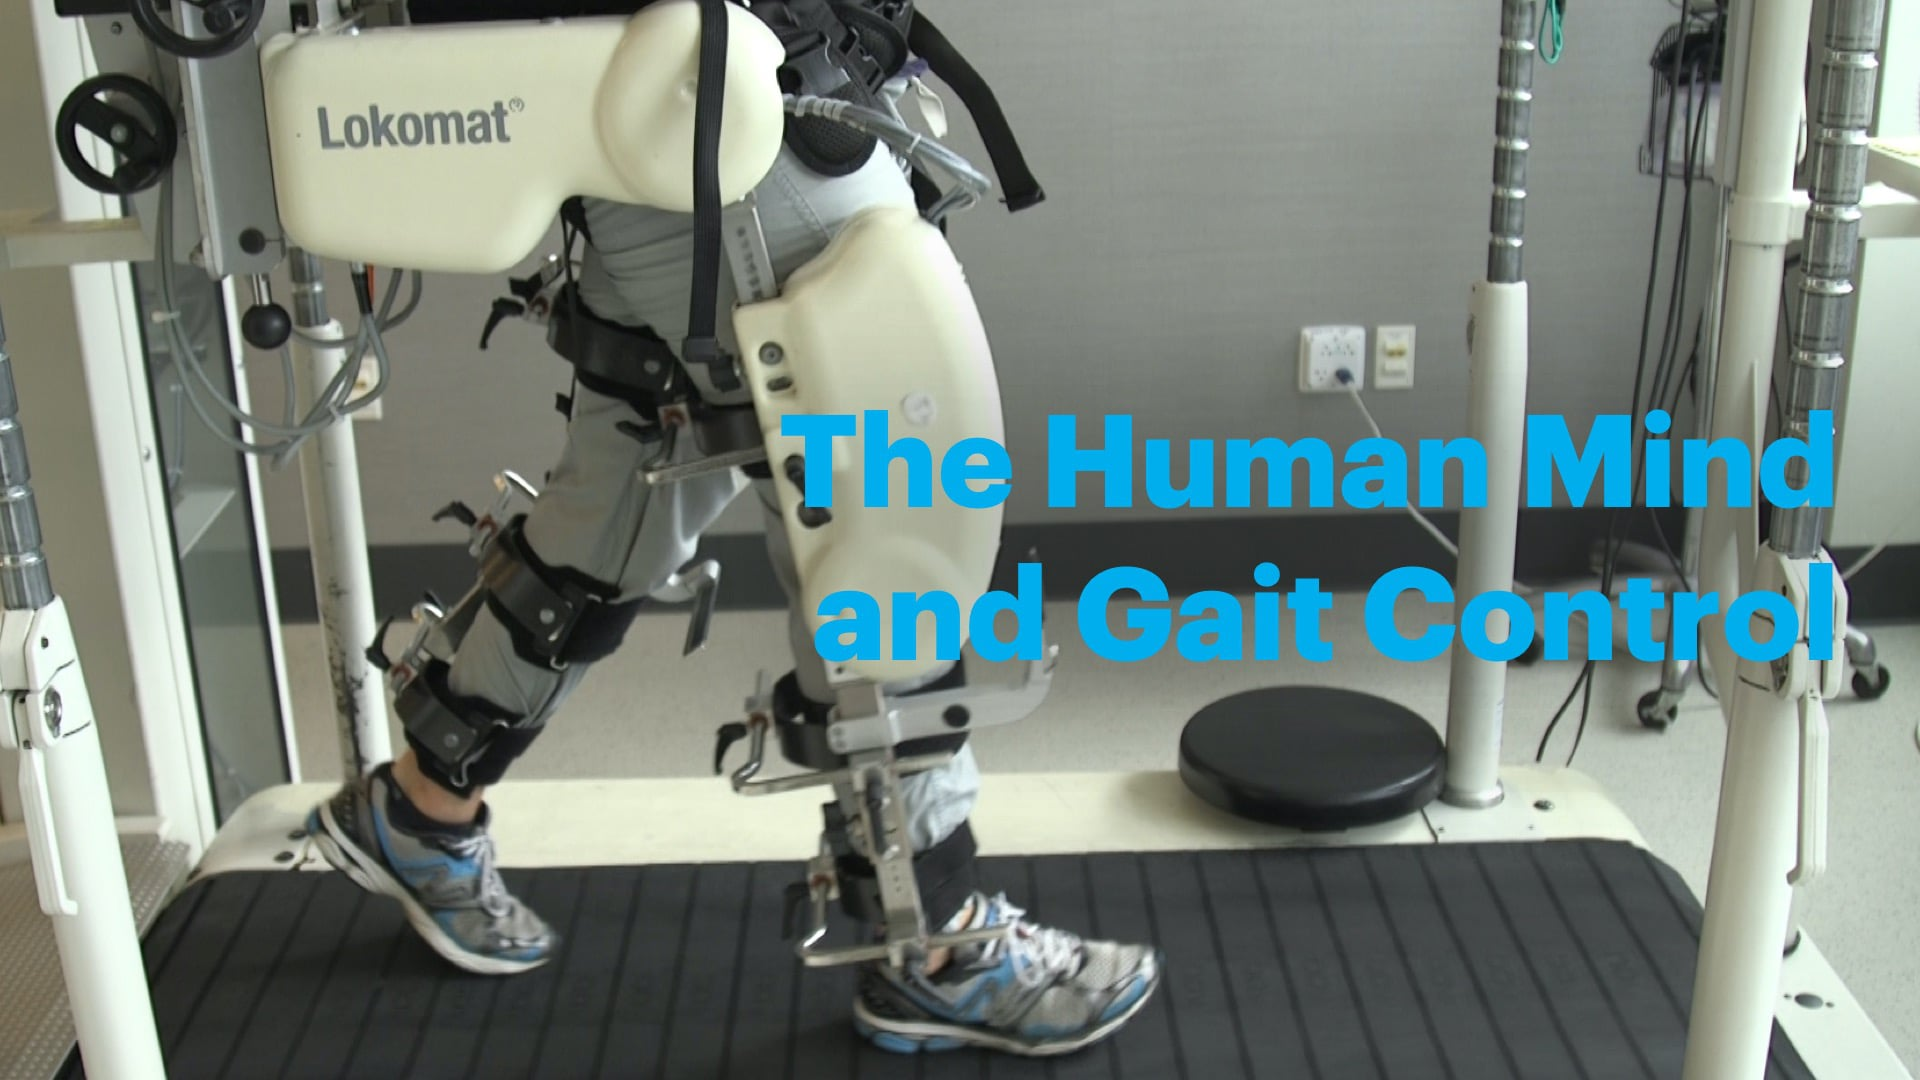 The Human Mind and Gait Control